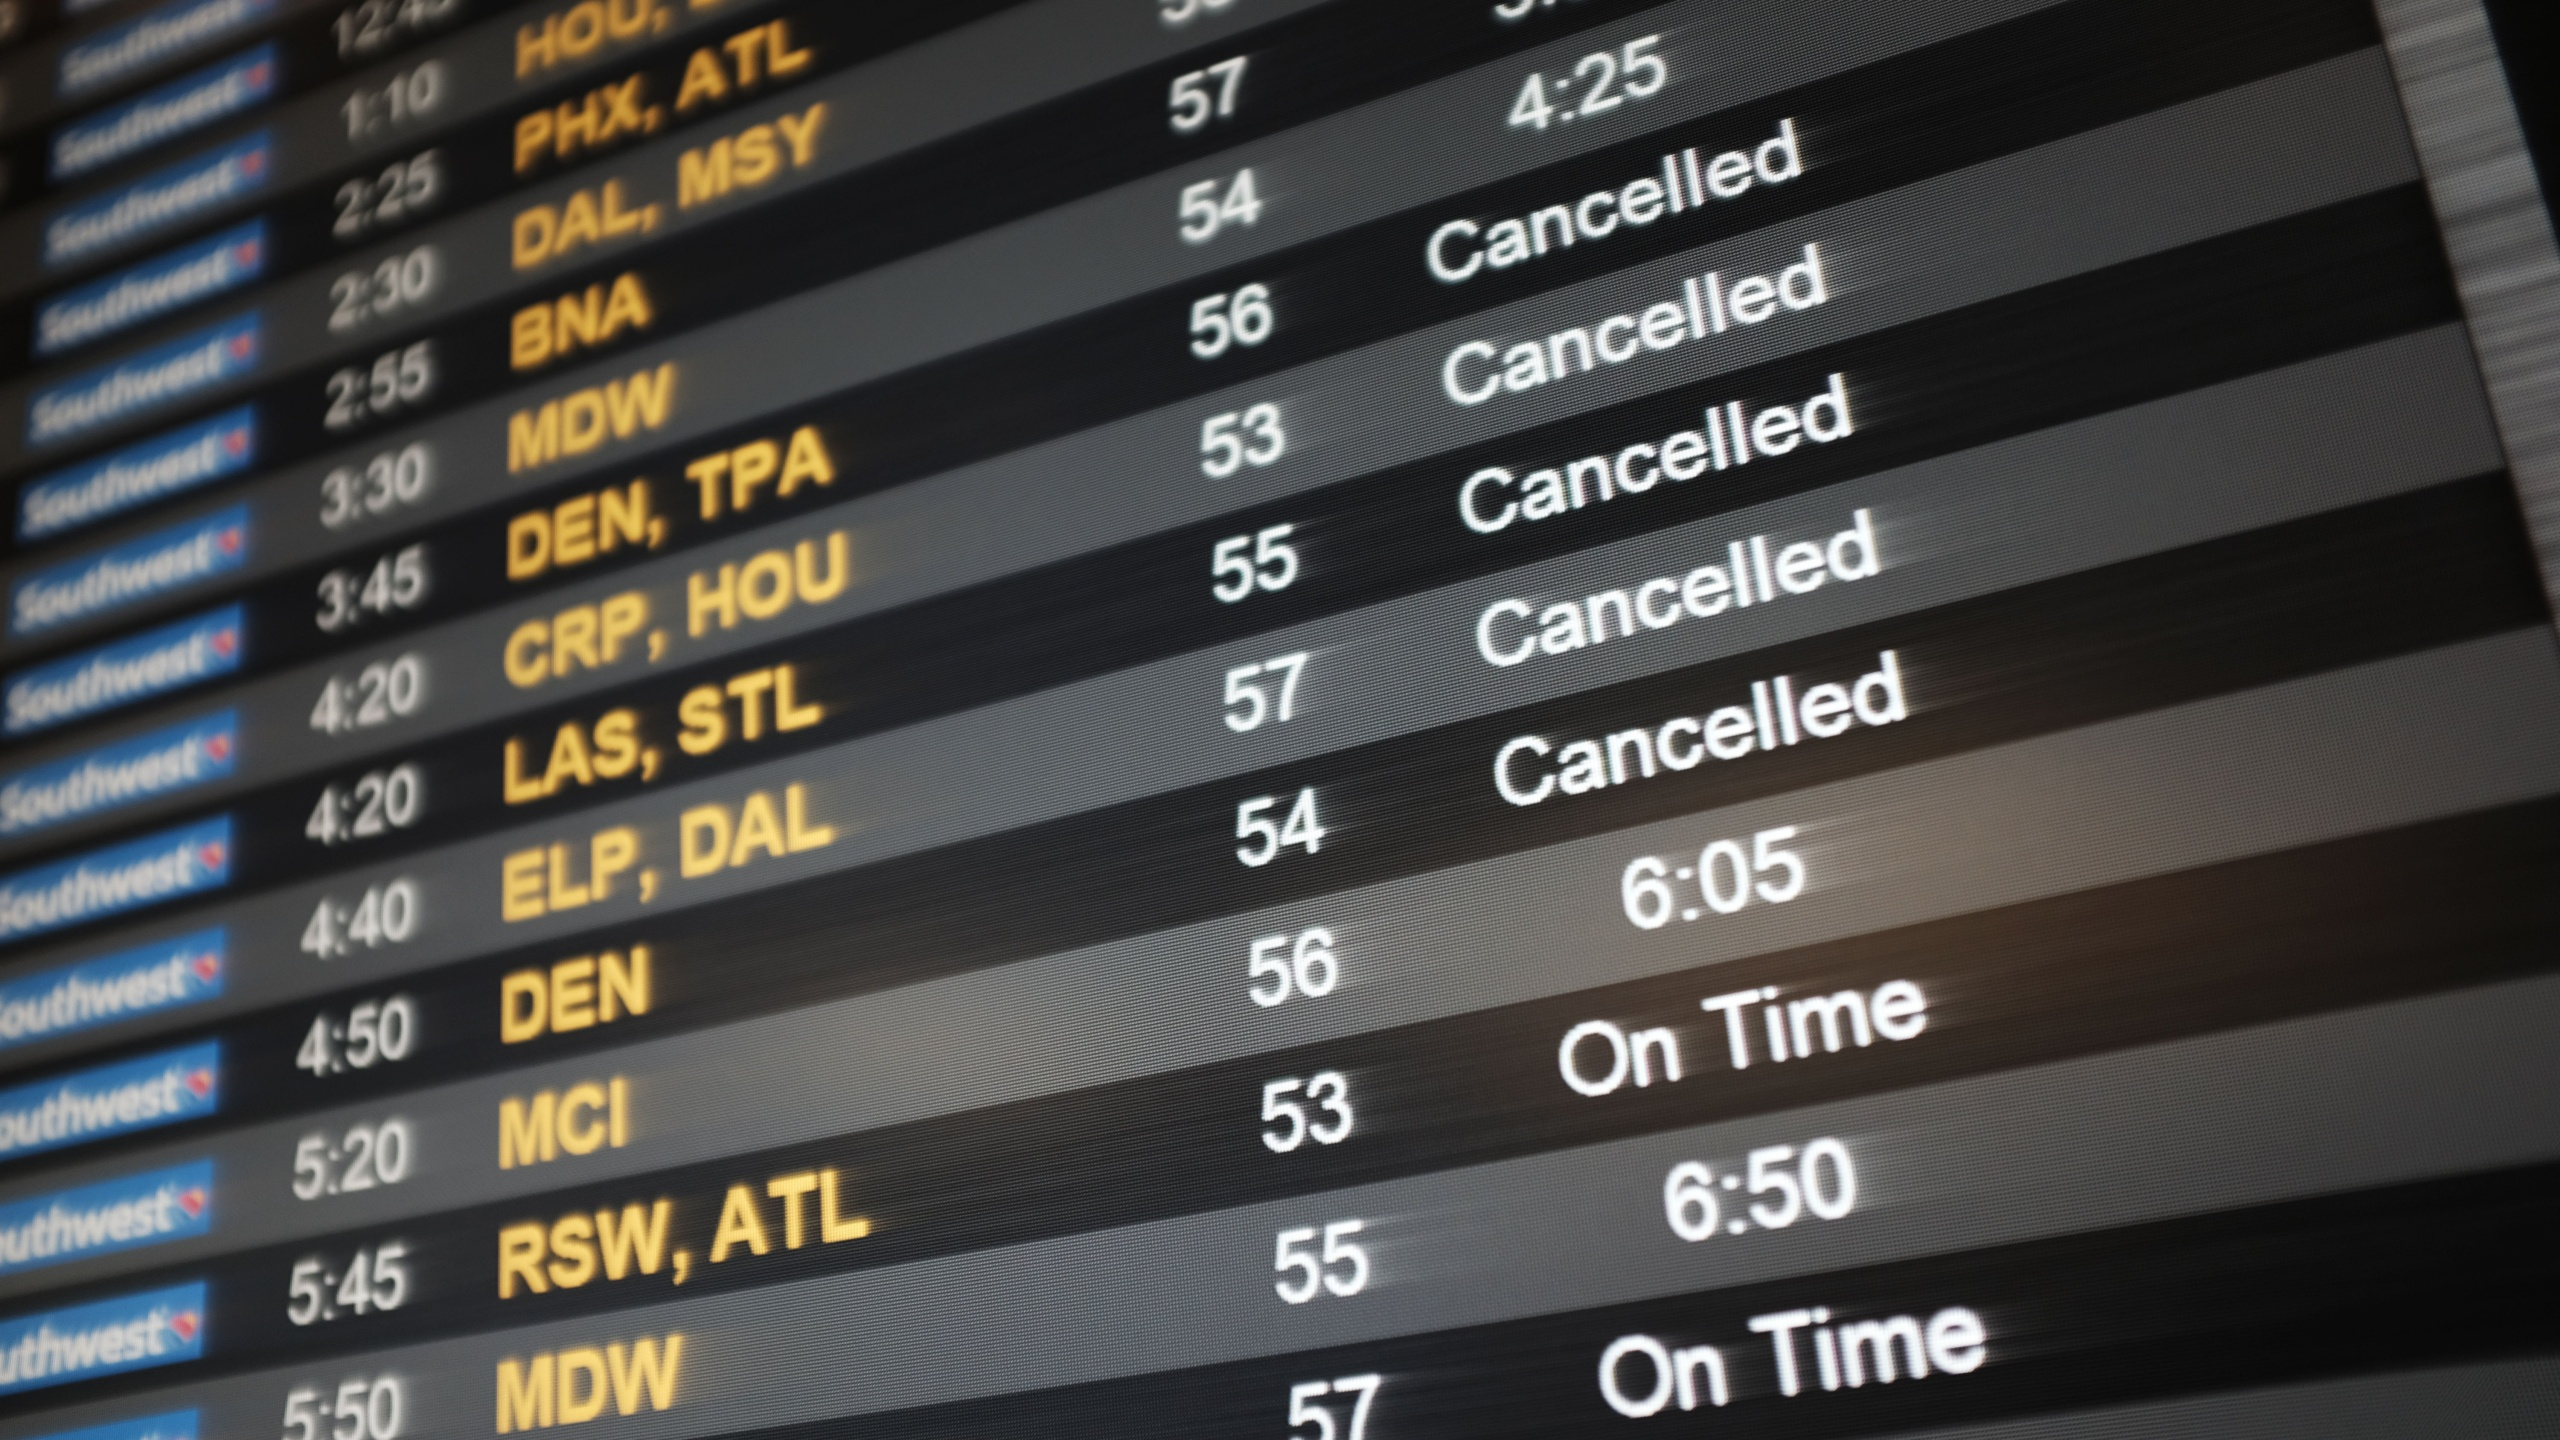 Flight delay cancellations